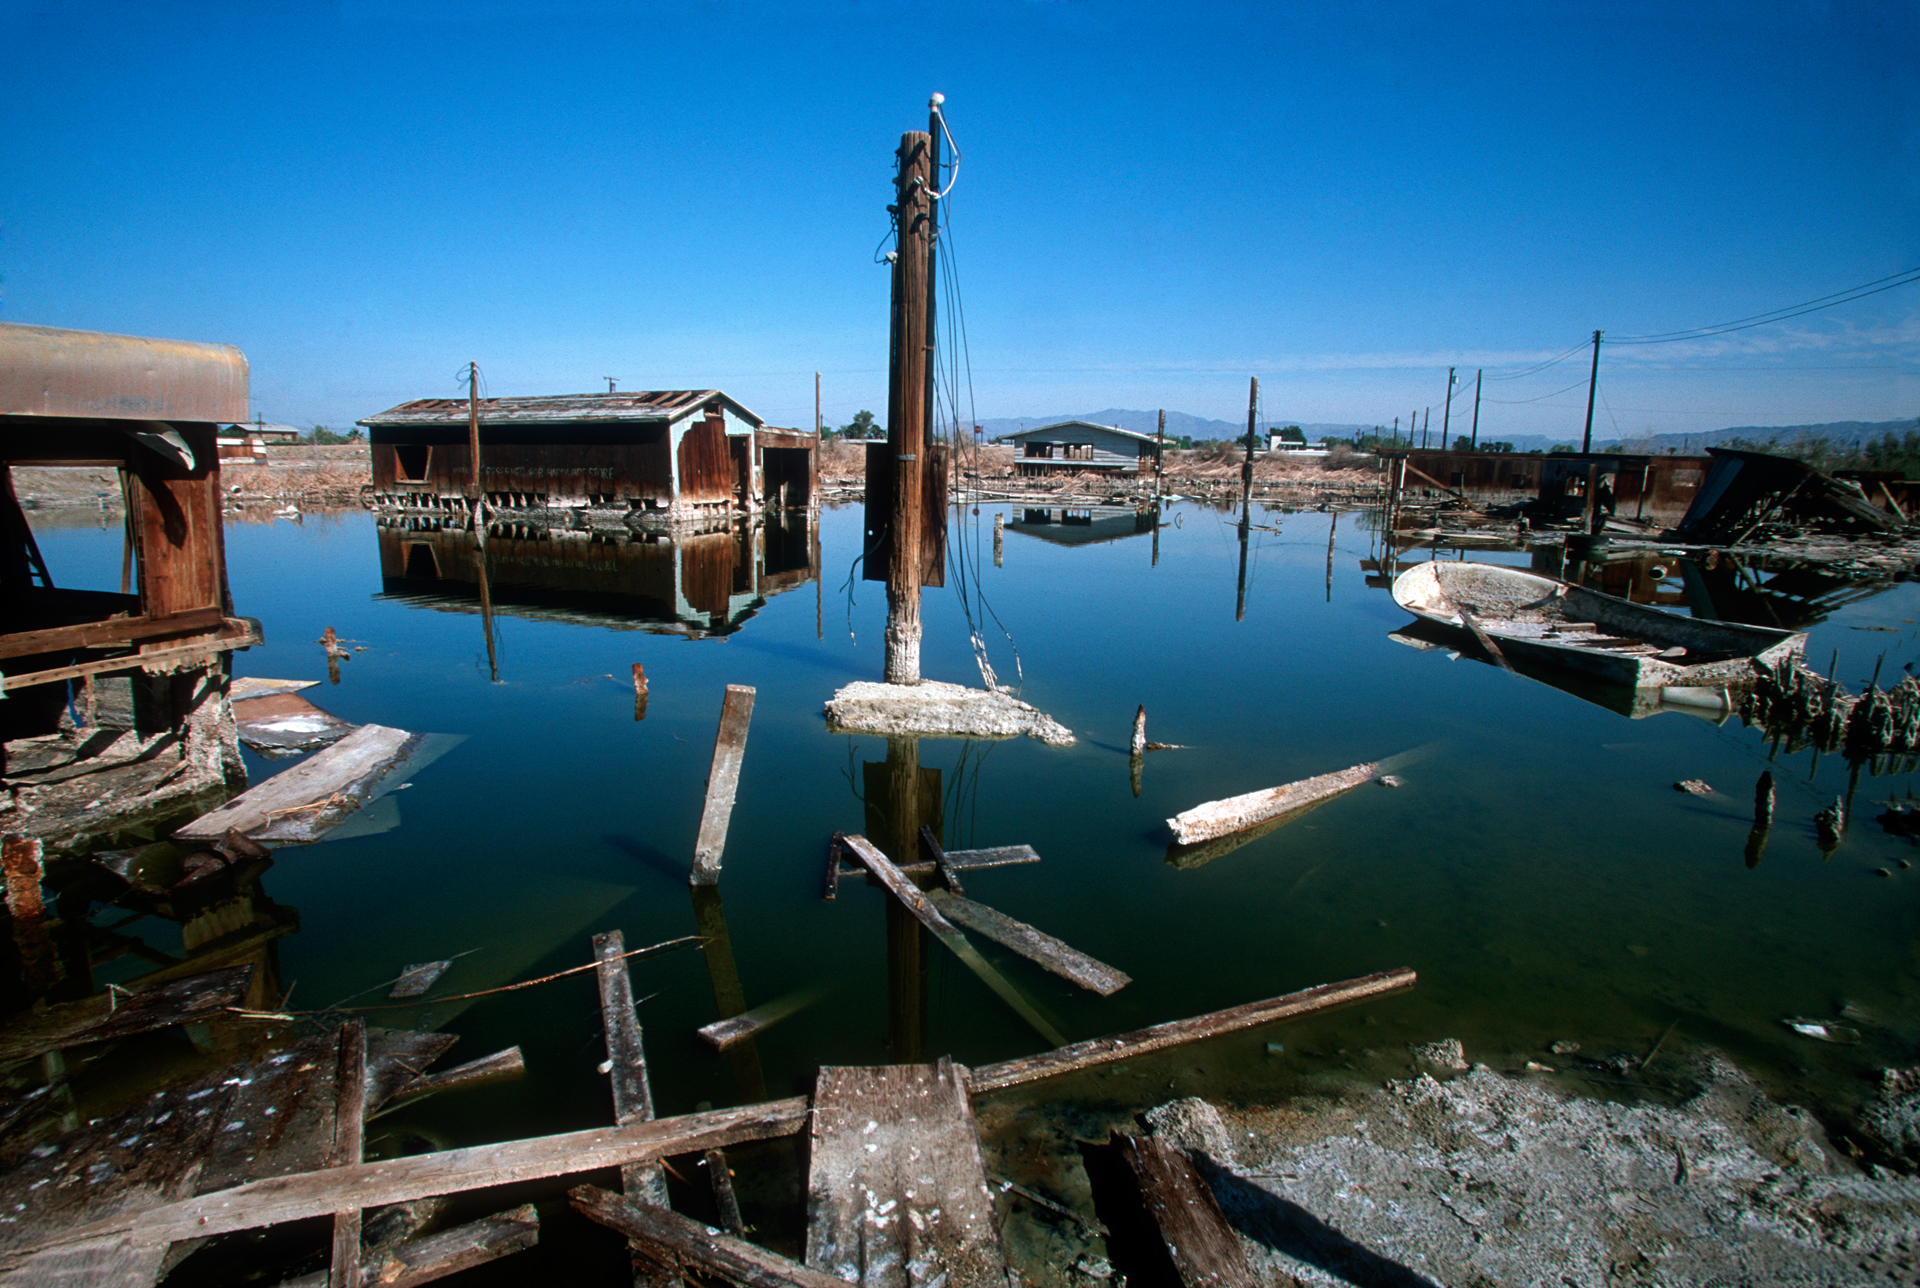 The fluctuation in sea level has flooded abandoned homes, leaving them to rot in the salt encrusted water.  Bombay Beach